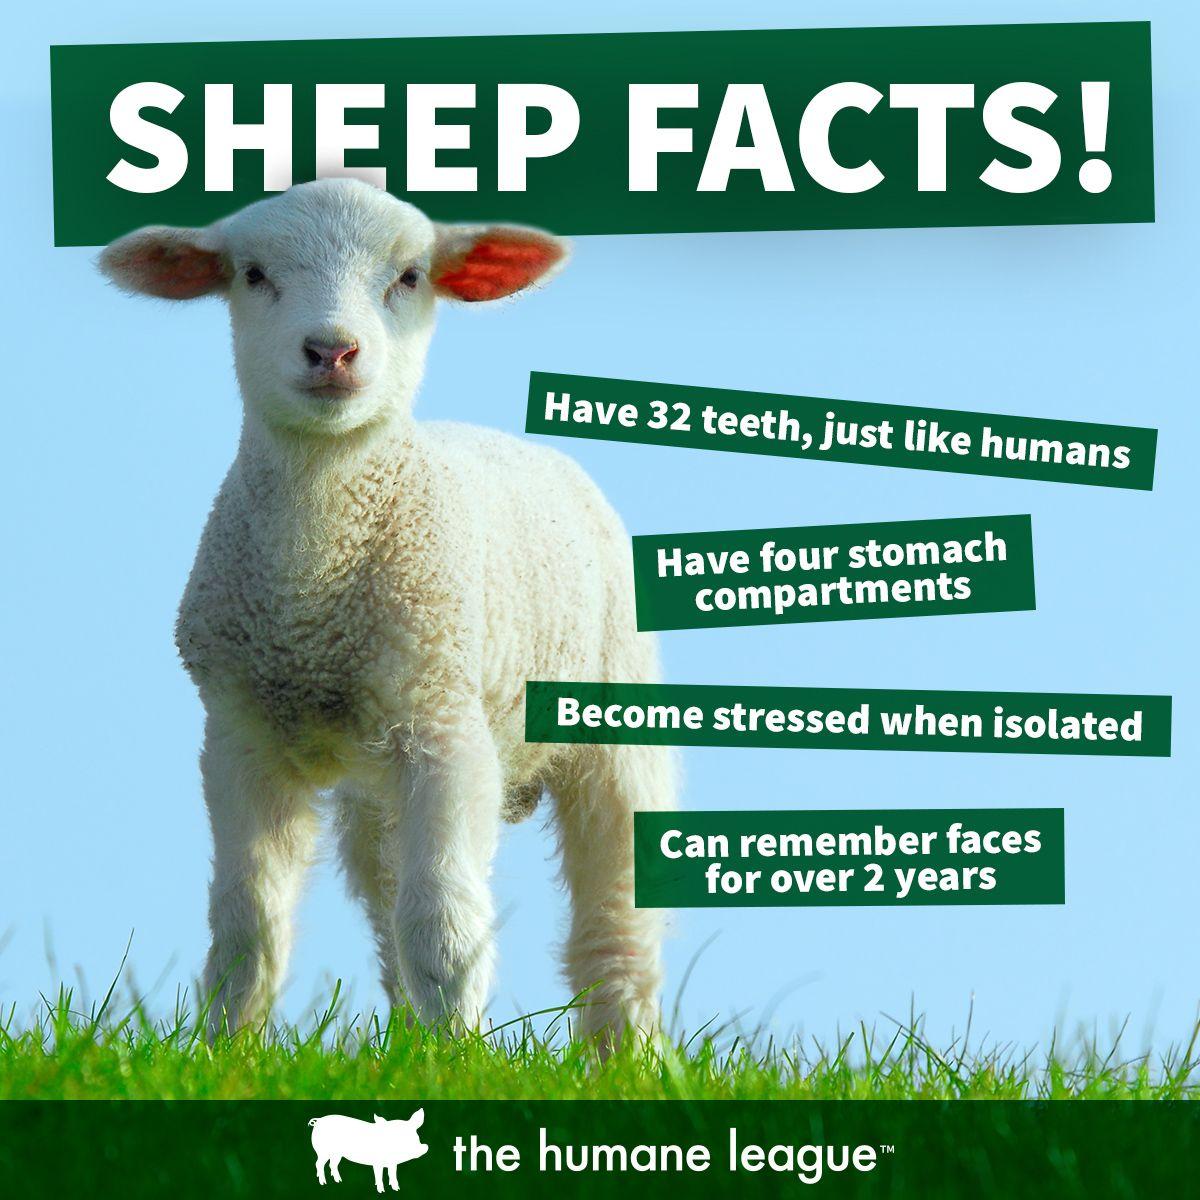 Image of: Eating Animal Facts Vegan Life Animal Rights Farm Animals Farming Pinterest Sheep Facts Animal Facts Animal Facts Animals Sheep